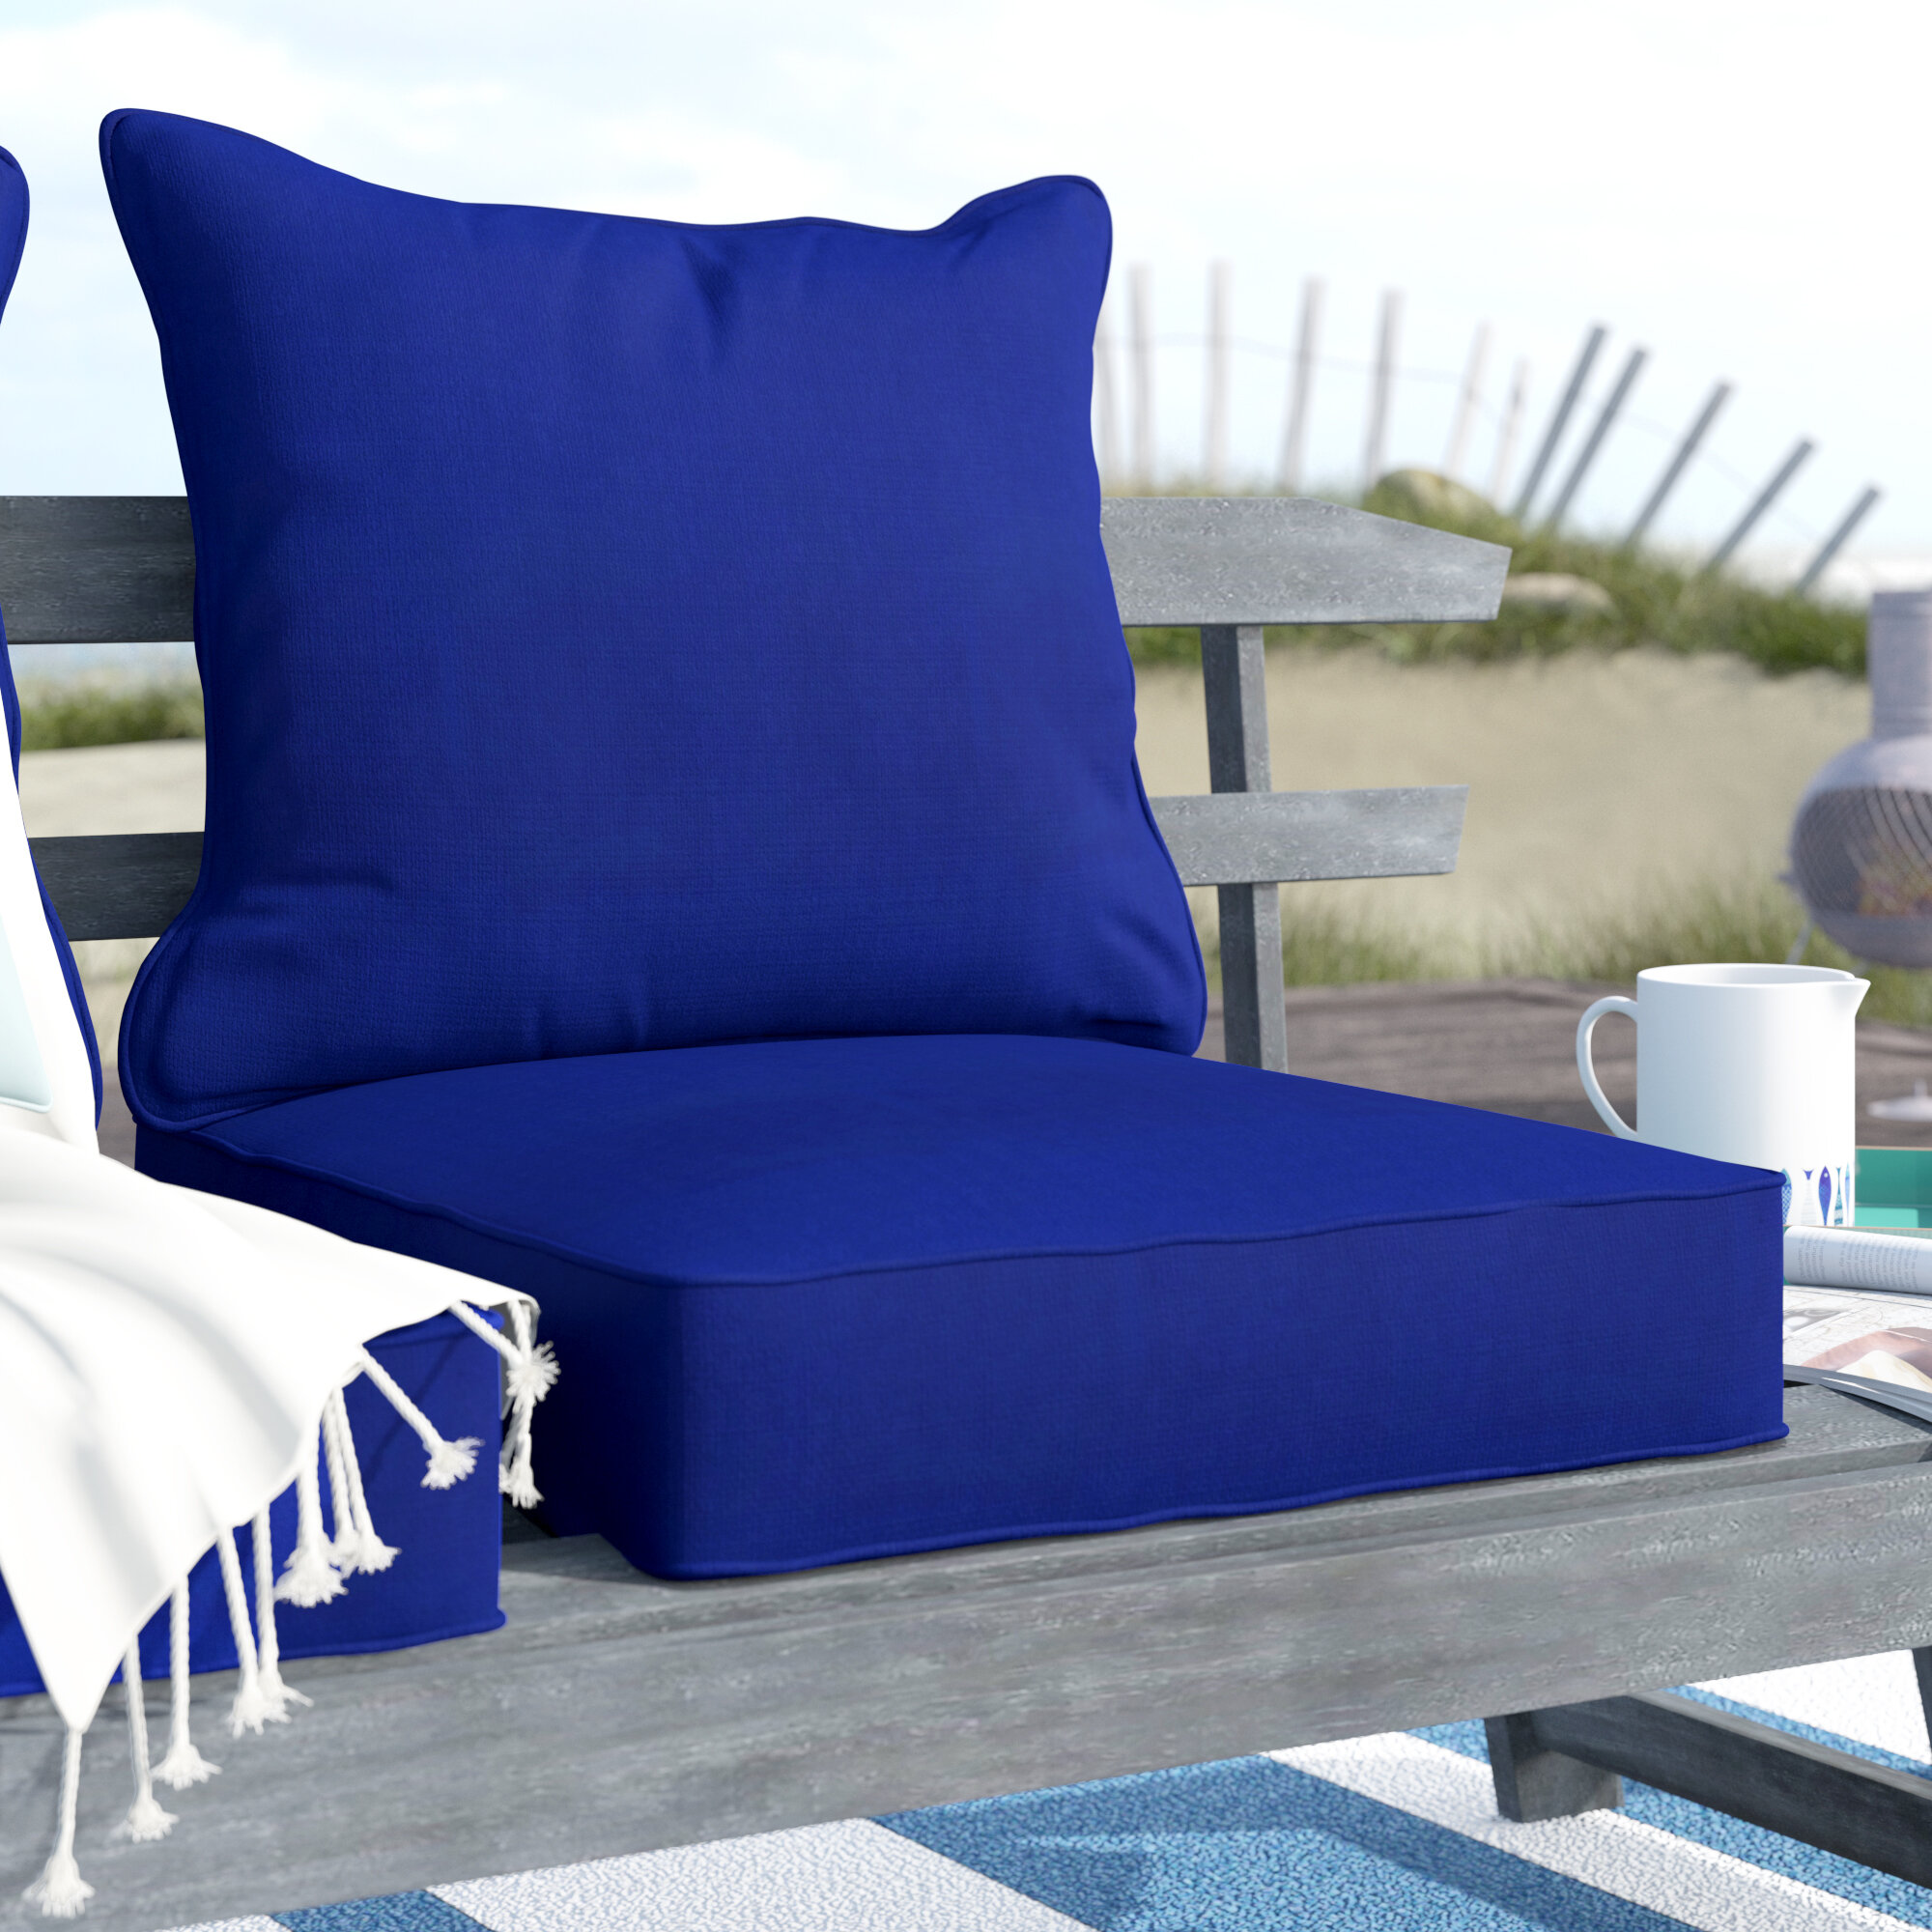 Elegant Breakwater Bay 2 Piece Indoor/Outdoor Chair Cushion Set U0026 Reviews | Wayfair